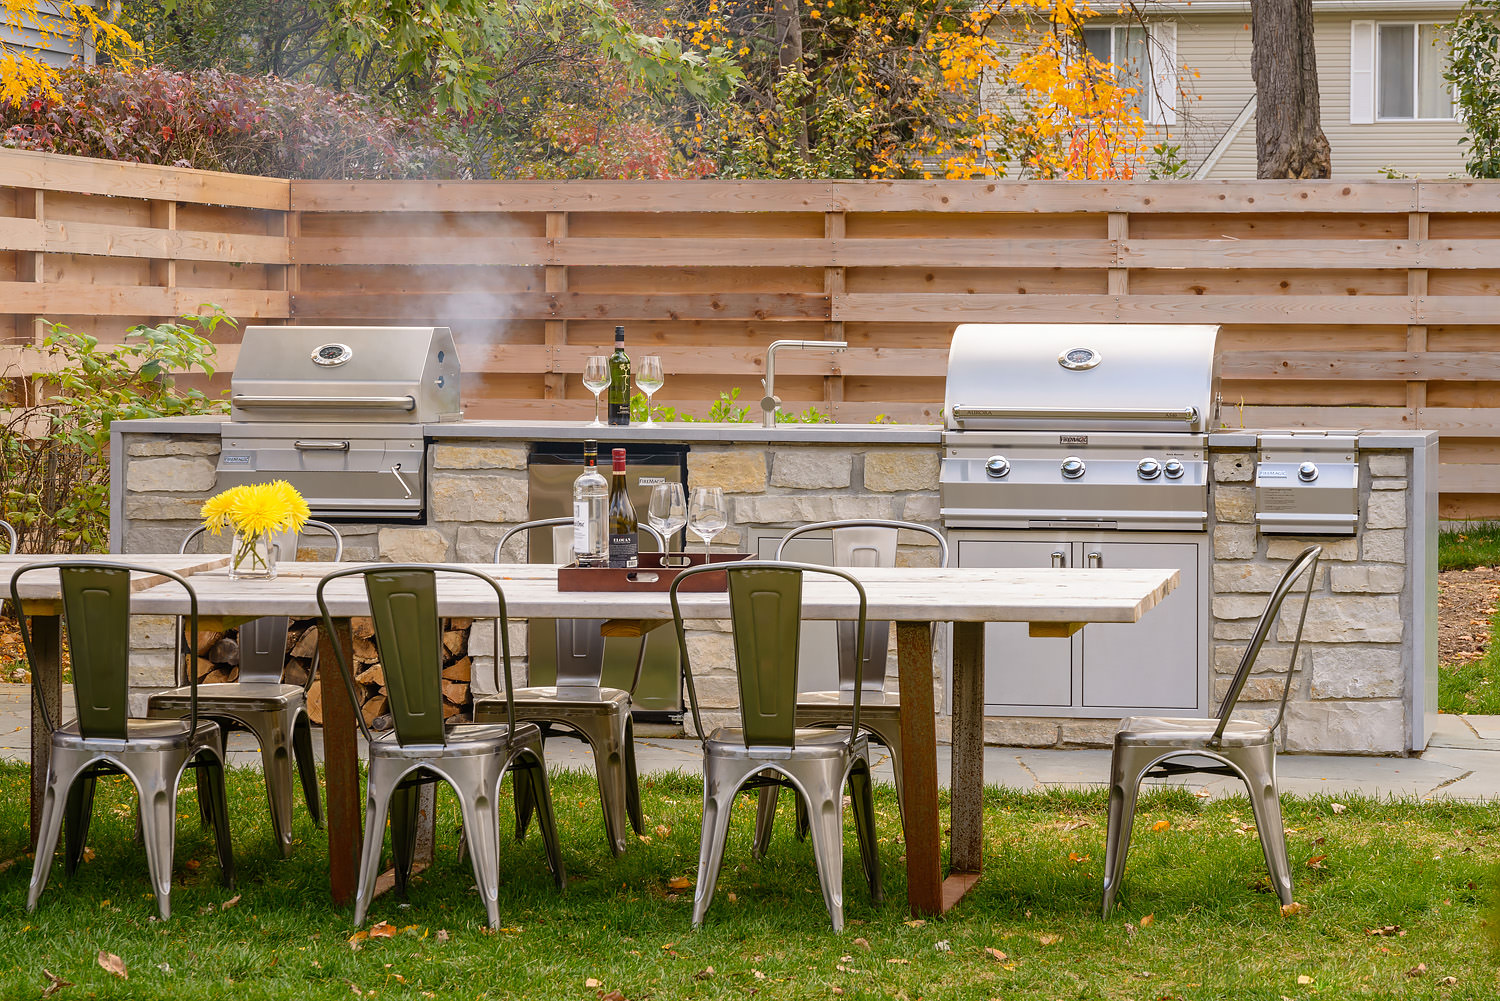 Fire Magic Grill and Outdoor Kitchen